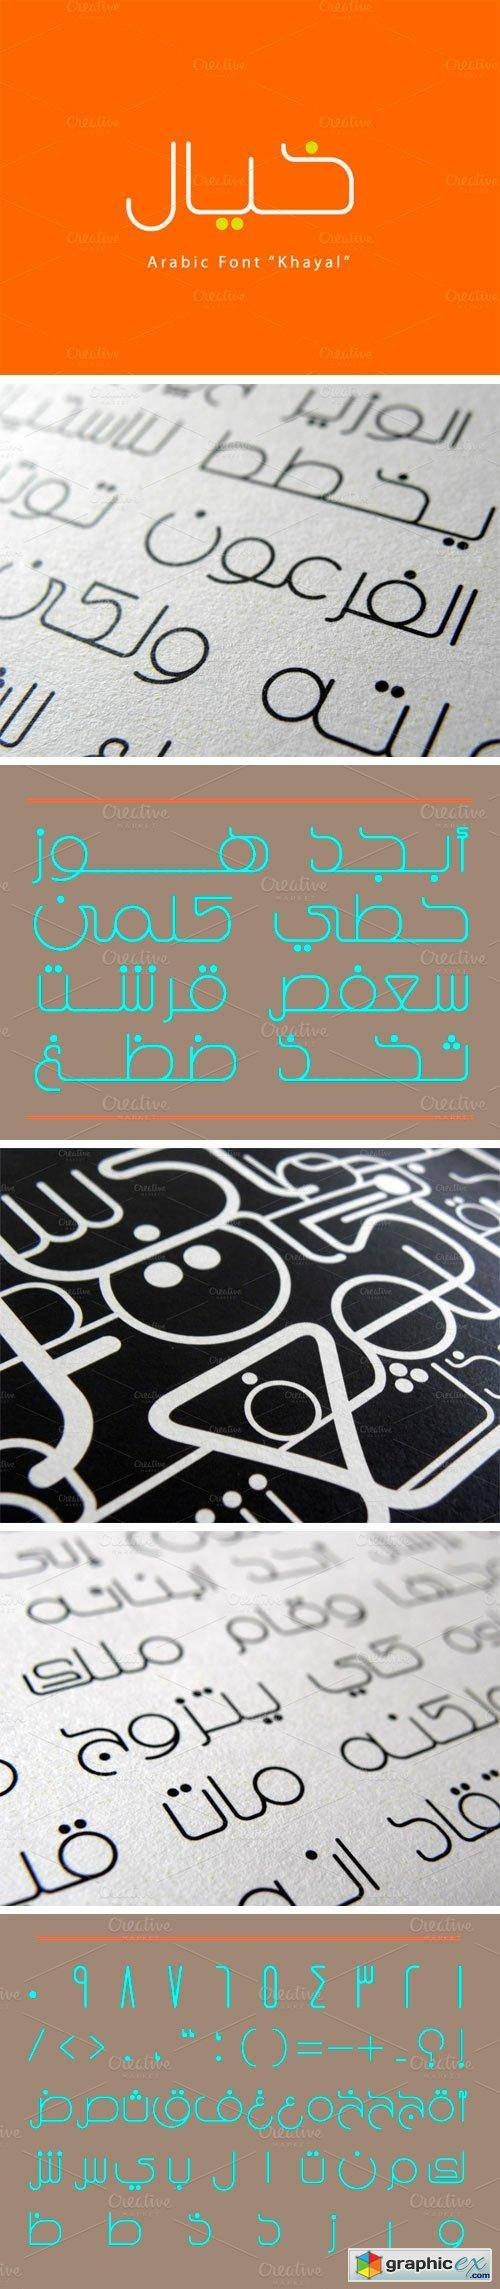 Khayal Arabic Font for $20